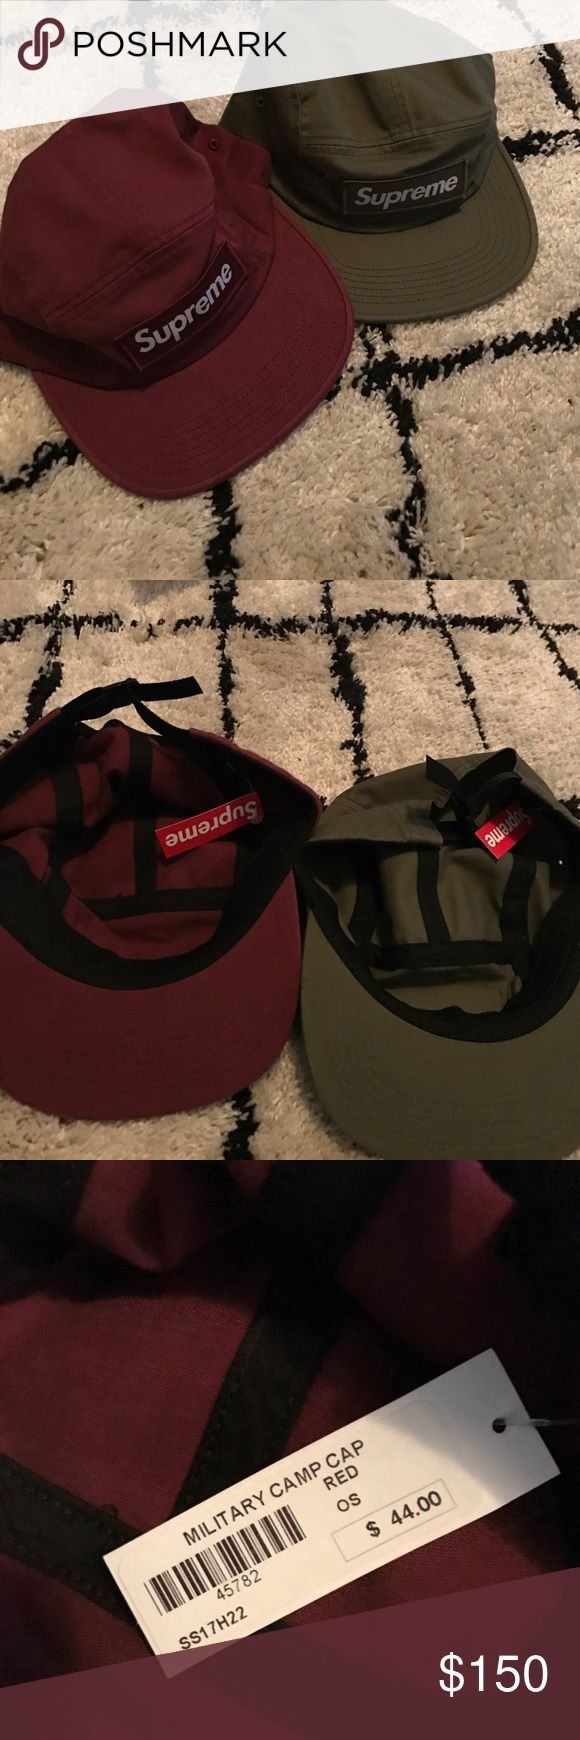 Supreme hats Selling two supreme hats wine and olive color never worn and still have shopping bag Supreme Accessories Hats